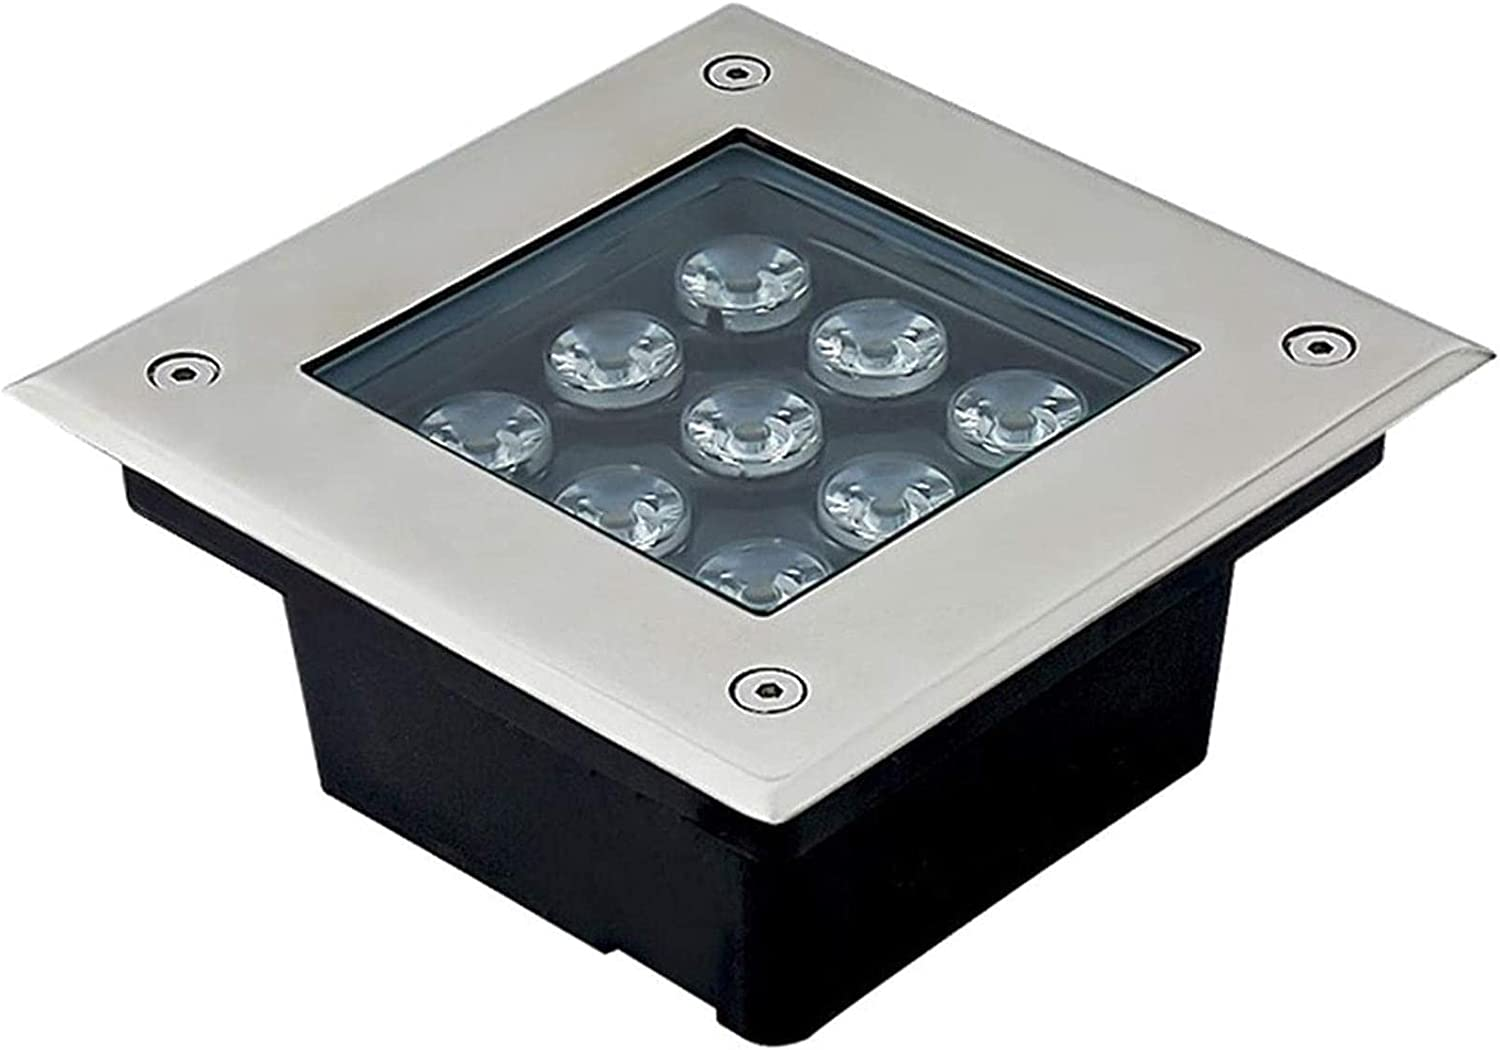 MWKLW 9W Outdoor LED Recessed Ranking TOP8 Floor Light Waterproof Warm White Sales of SALE items from new works